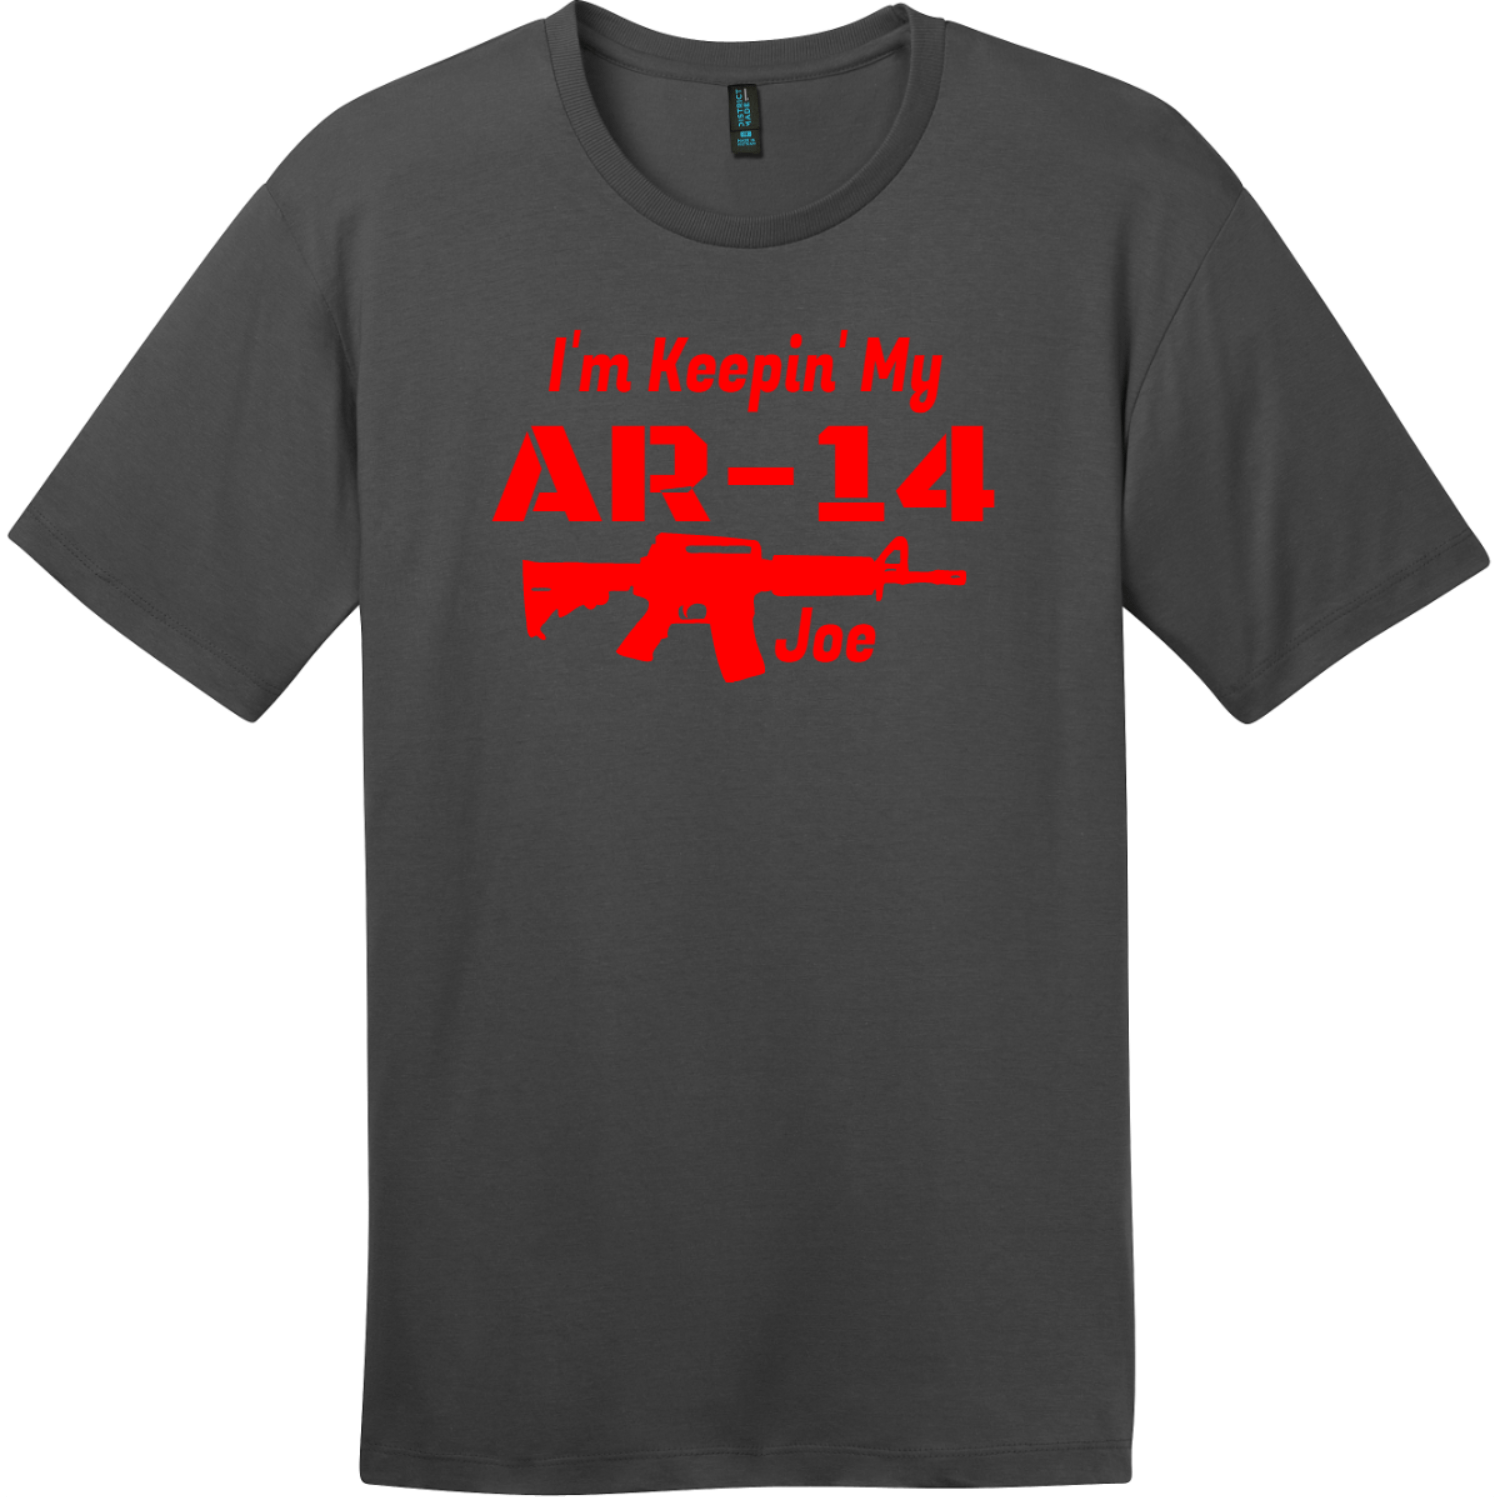 I'm Keepin' My AR-14 Joe T-Shirt Charcoal District Perfect Weight Tee DT104